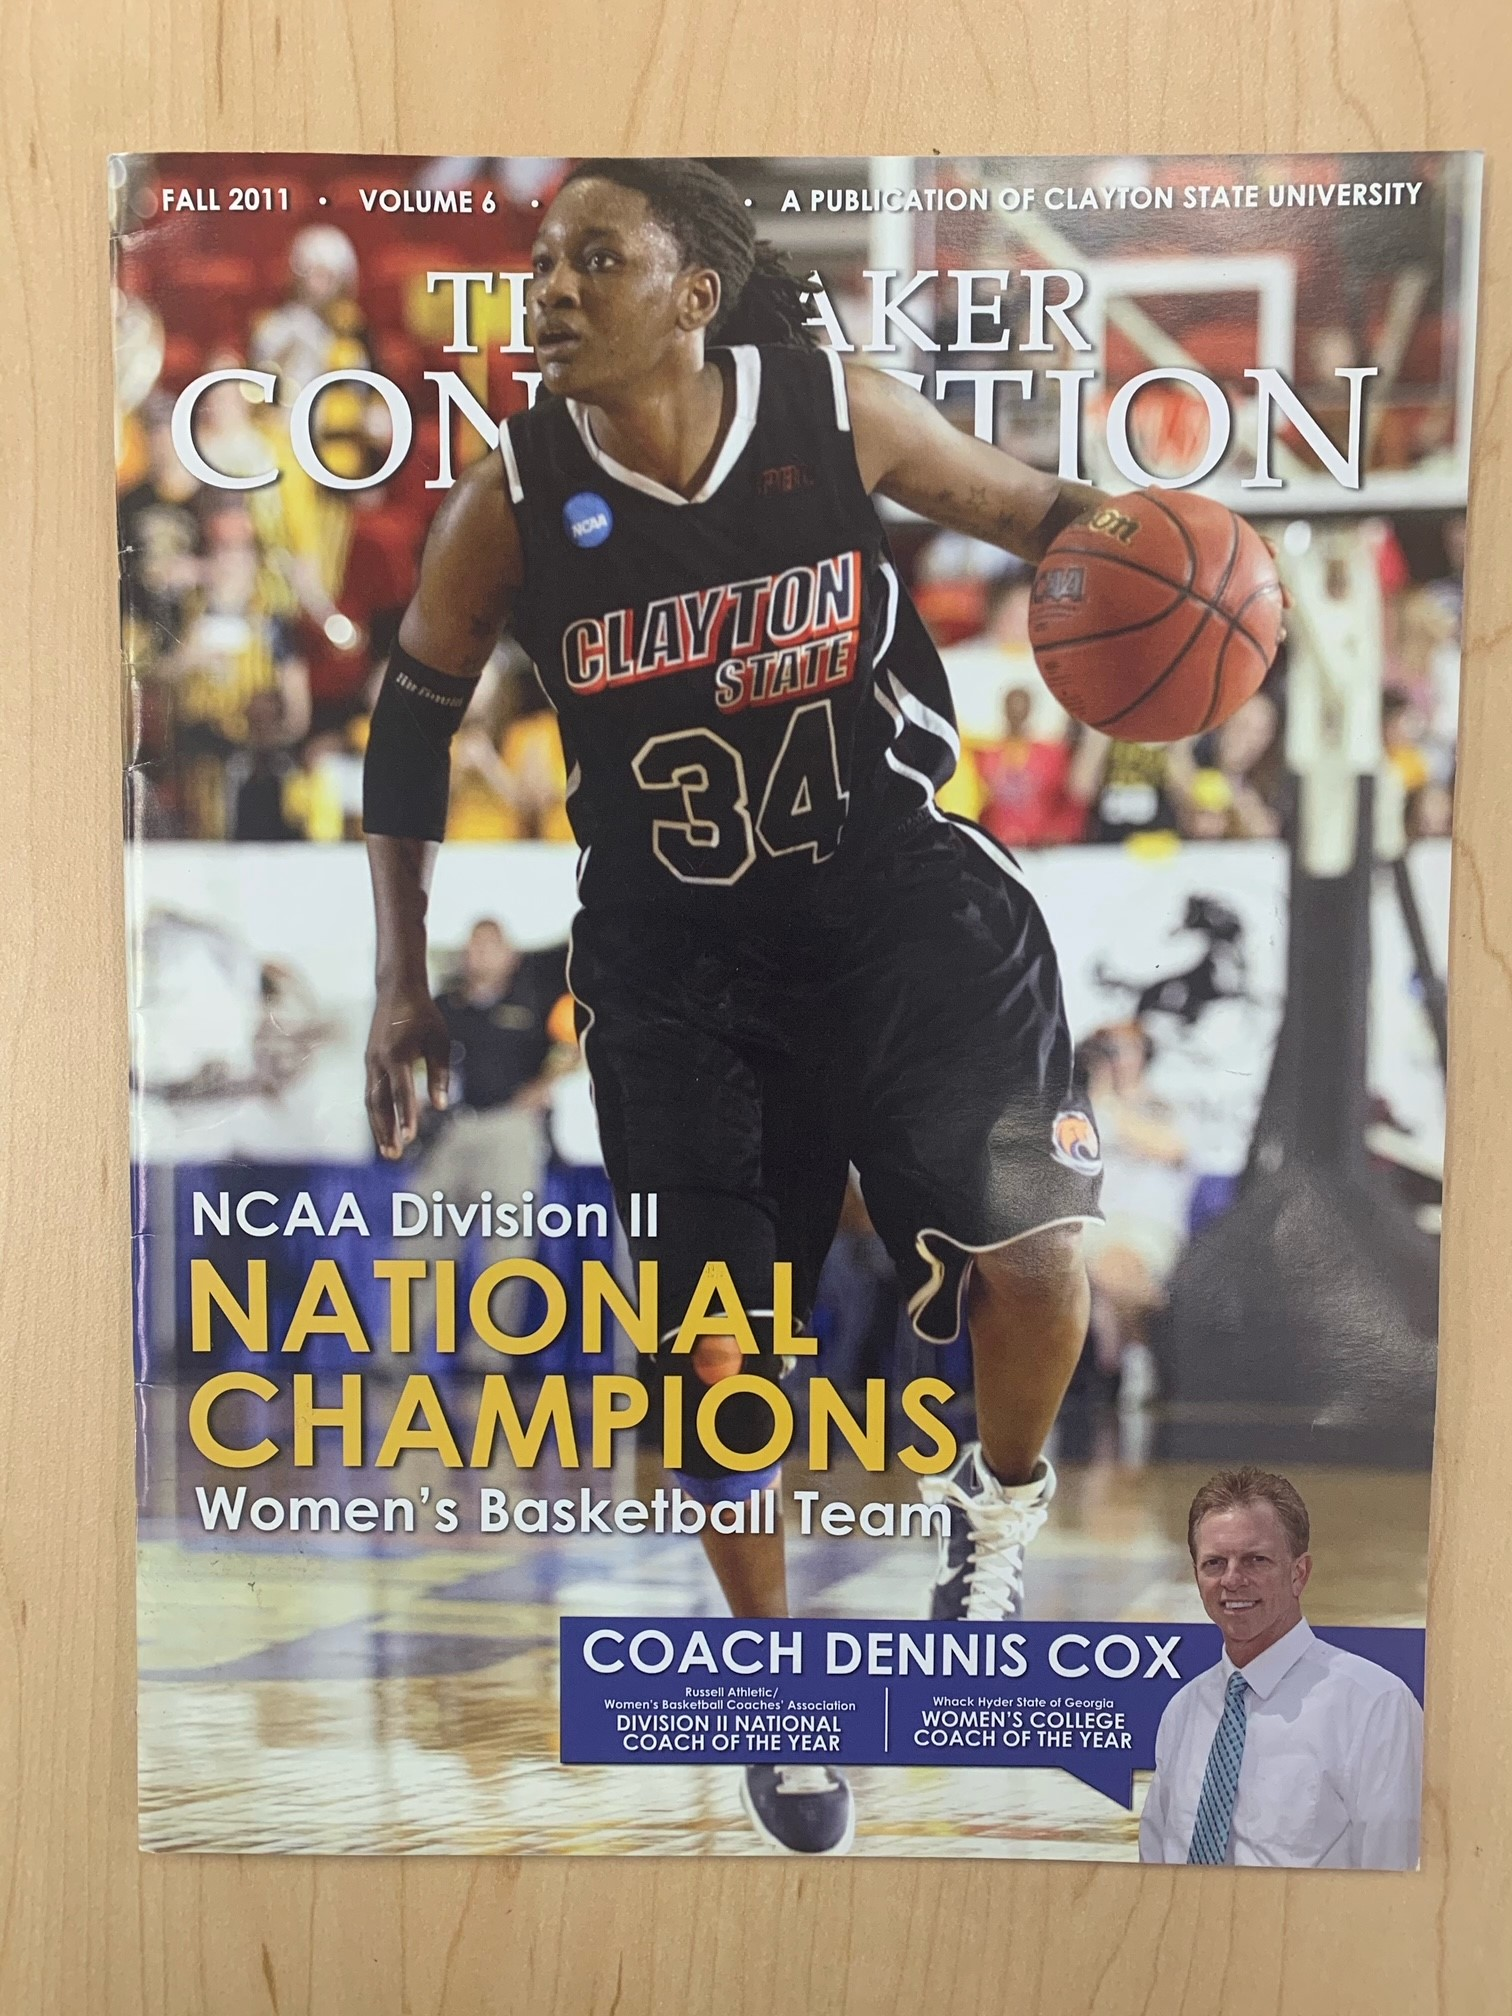 Fall 2011 Laker Connection: Featuring CSU Women's Basketball Team as the NCAA II National Champions.